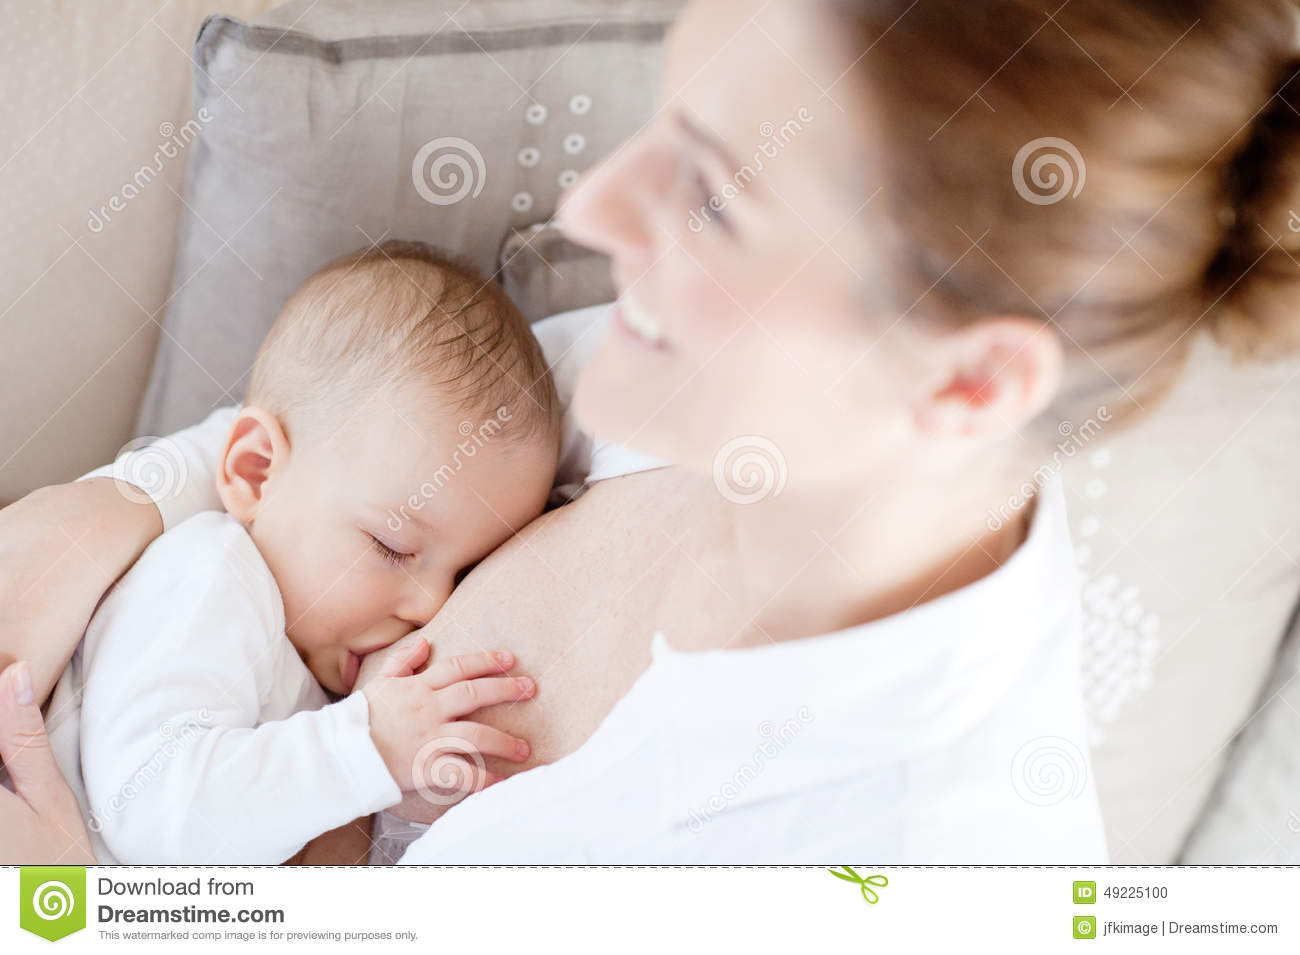 Mother Breast Feeding Her Infant Stock Photo - Image: 49225100